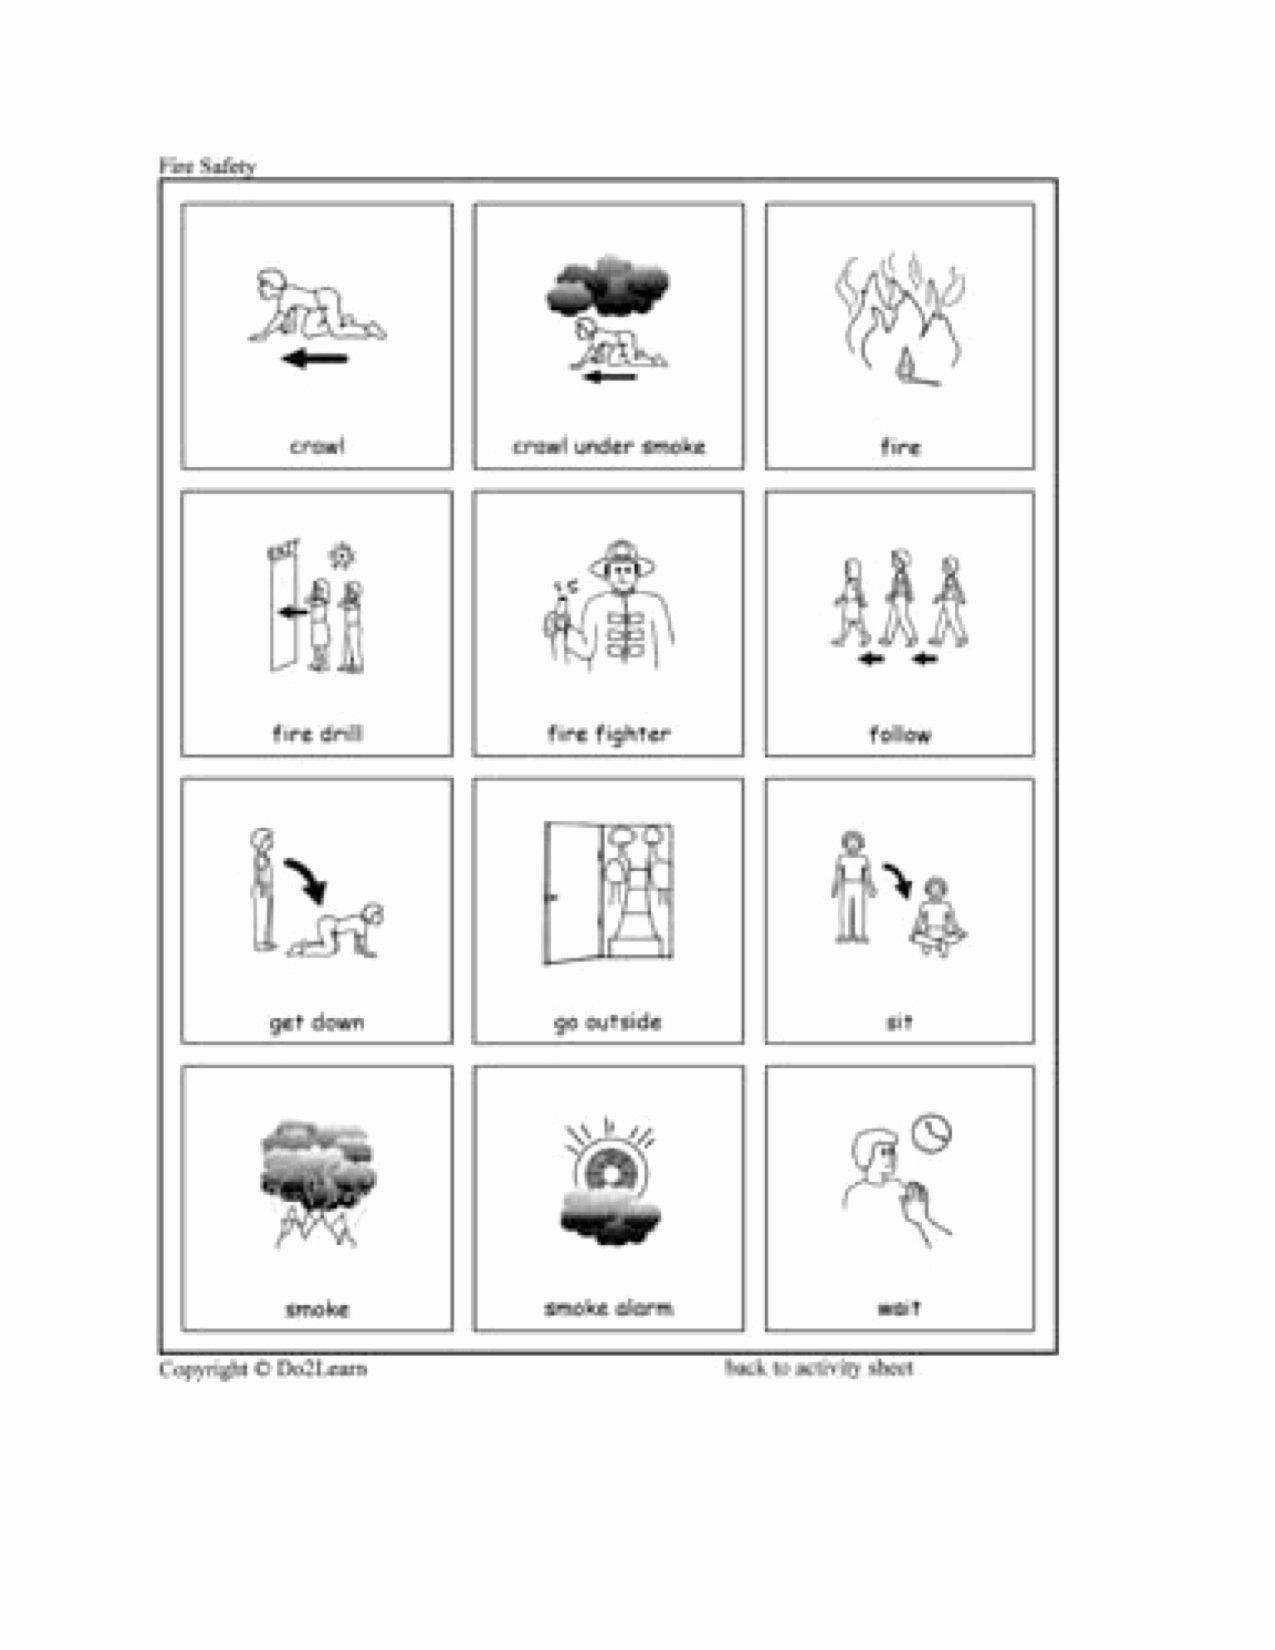 Fire Safety Worksheets for Preschoolers Kids Fire Safety